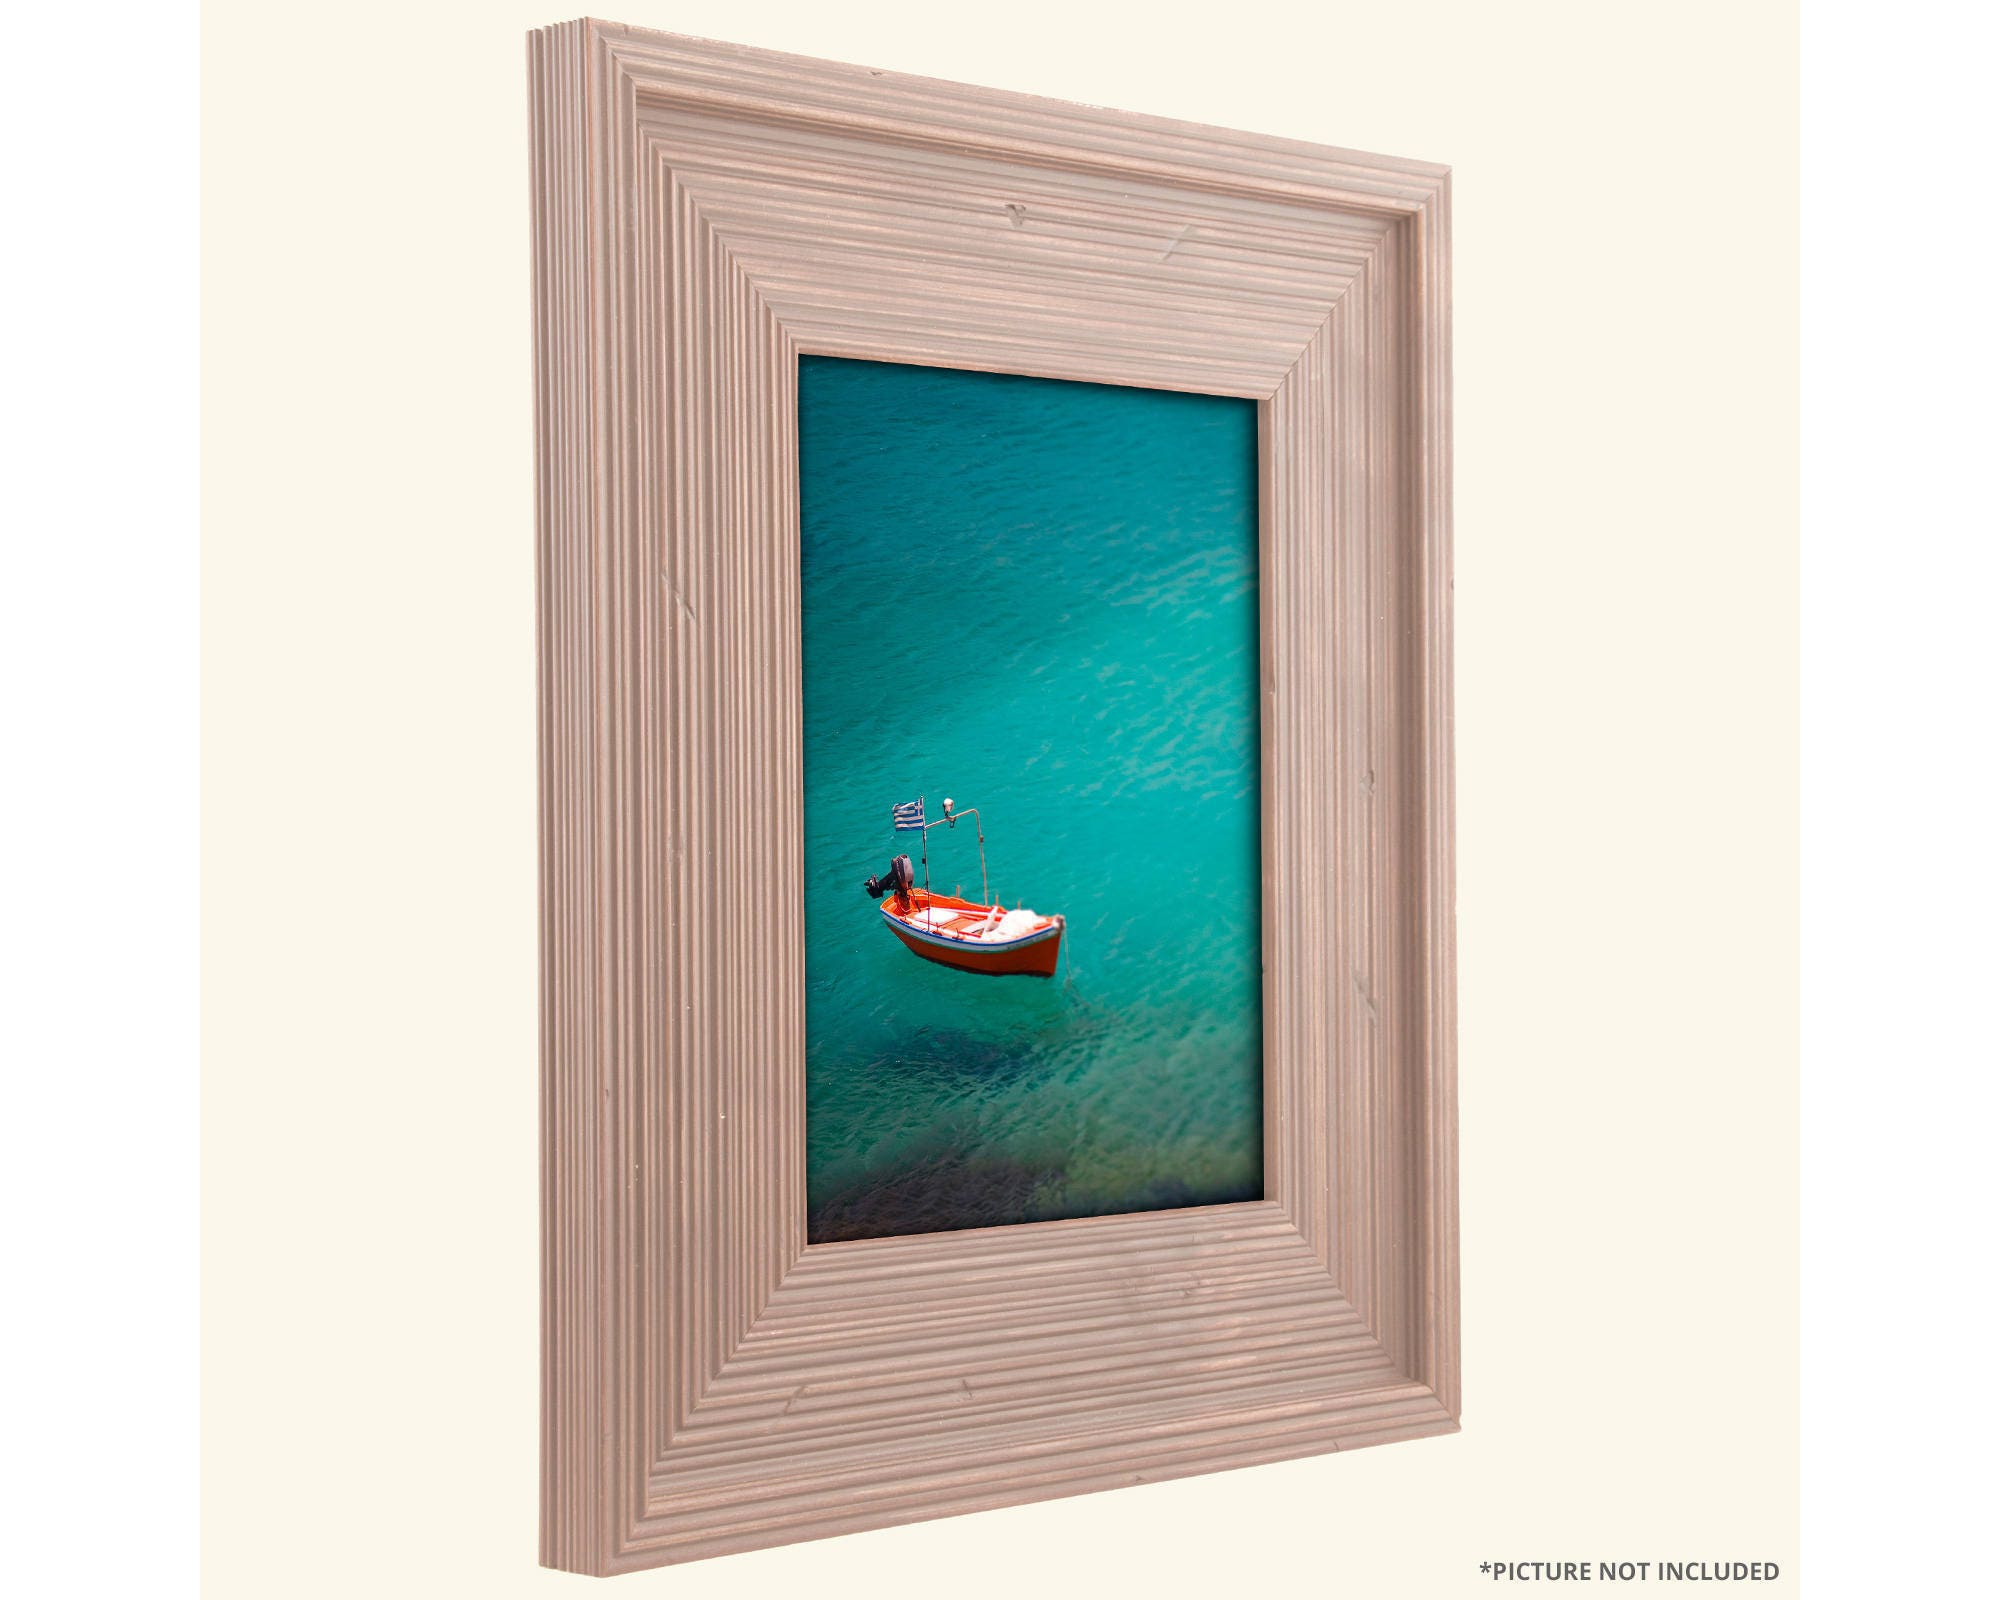 Craig frames 20x20 inch rustic light brown picture frame sold by craigframes jeuxipadfo Image collections